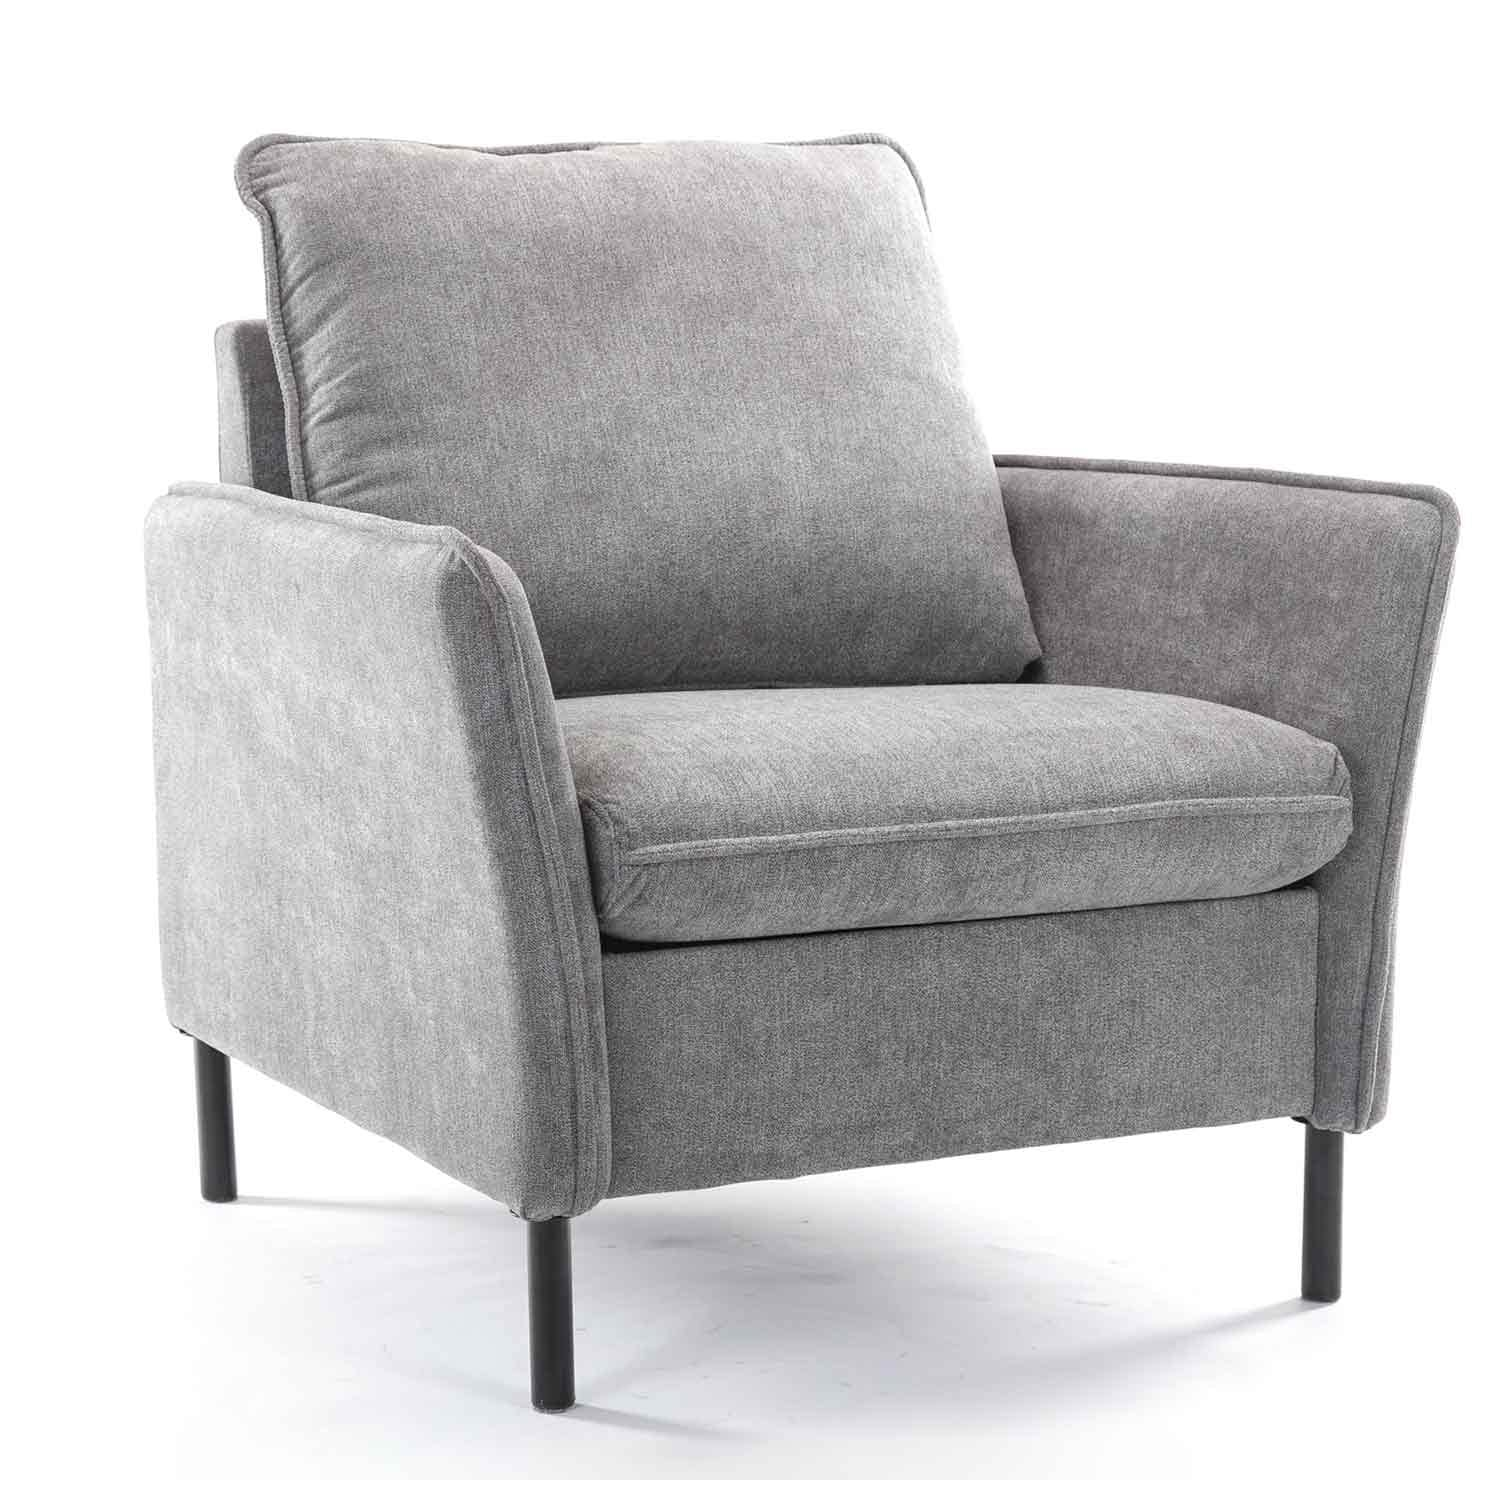 Milemont Accent Chair, Armchair, Single Sofa for Bedroom and Living Room, Modern Upholstered Seat, Grey